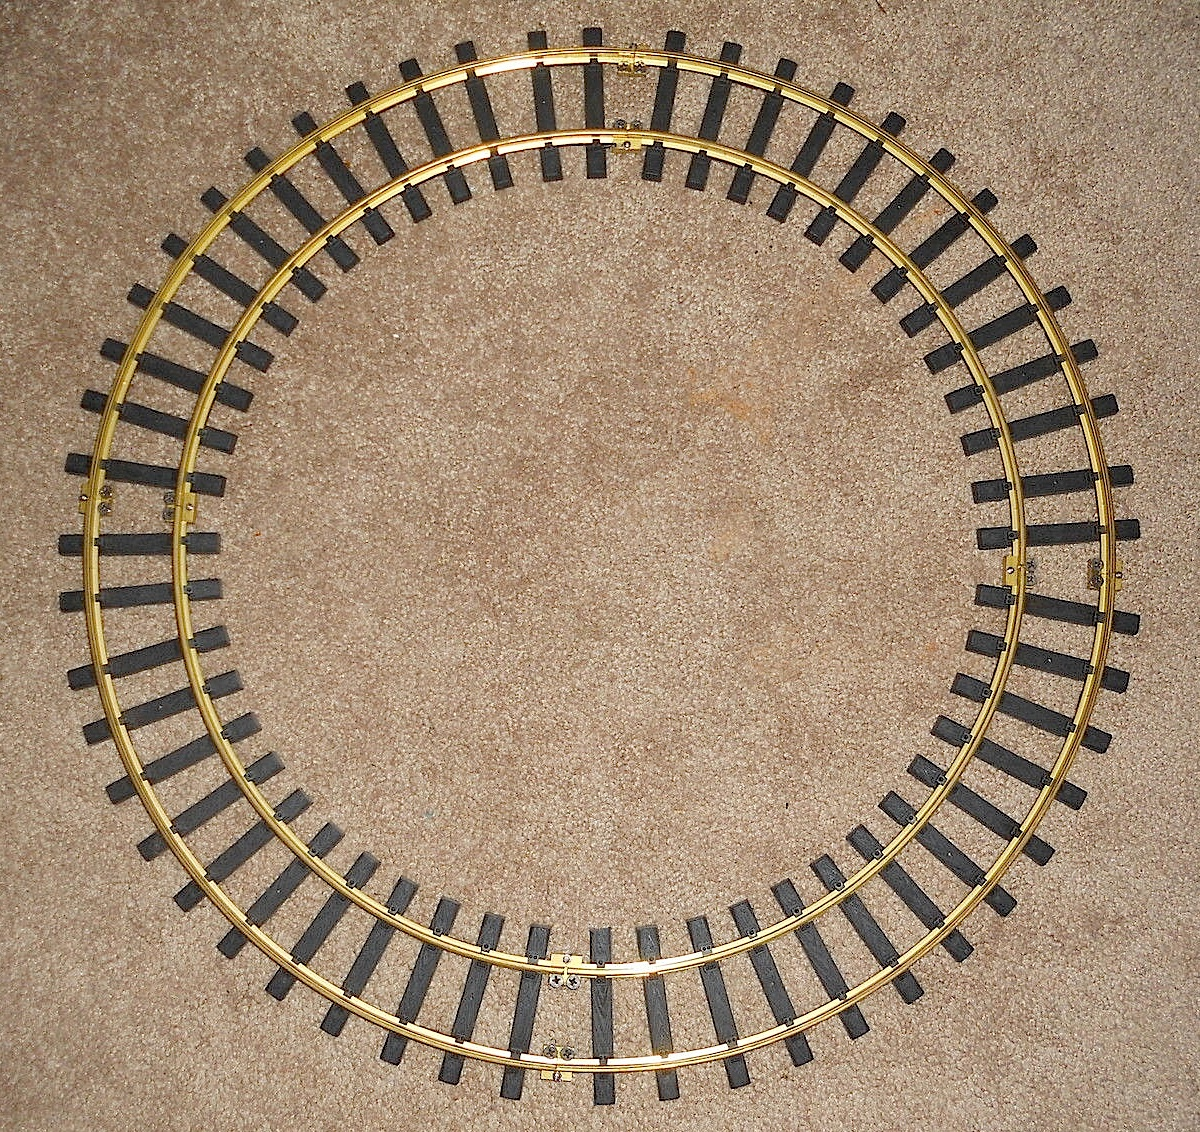 254mm Radius Minikreis (20 inch Diameter Mini Circle)